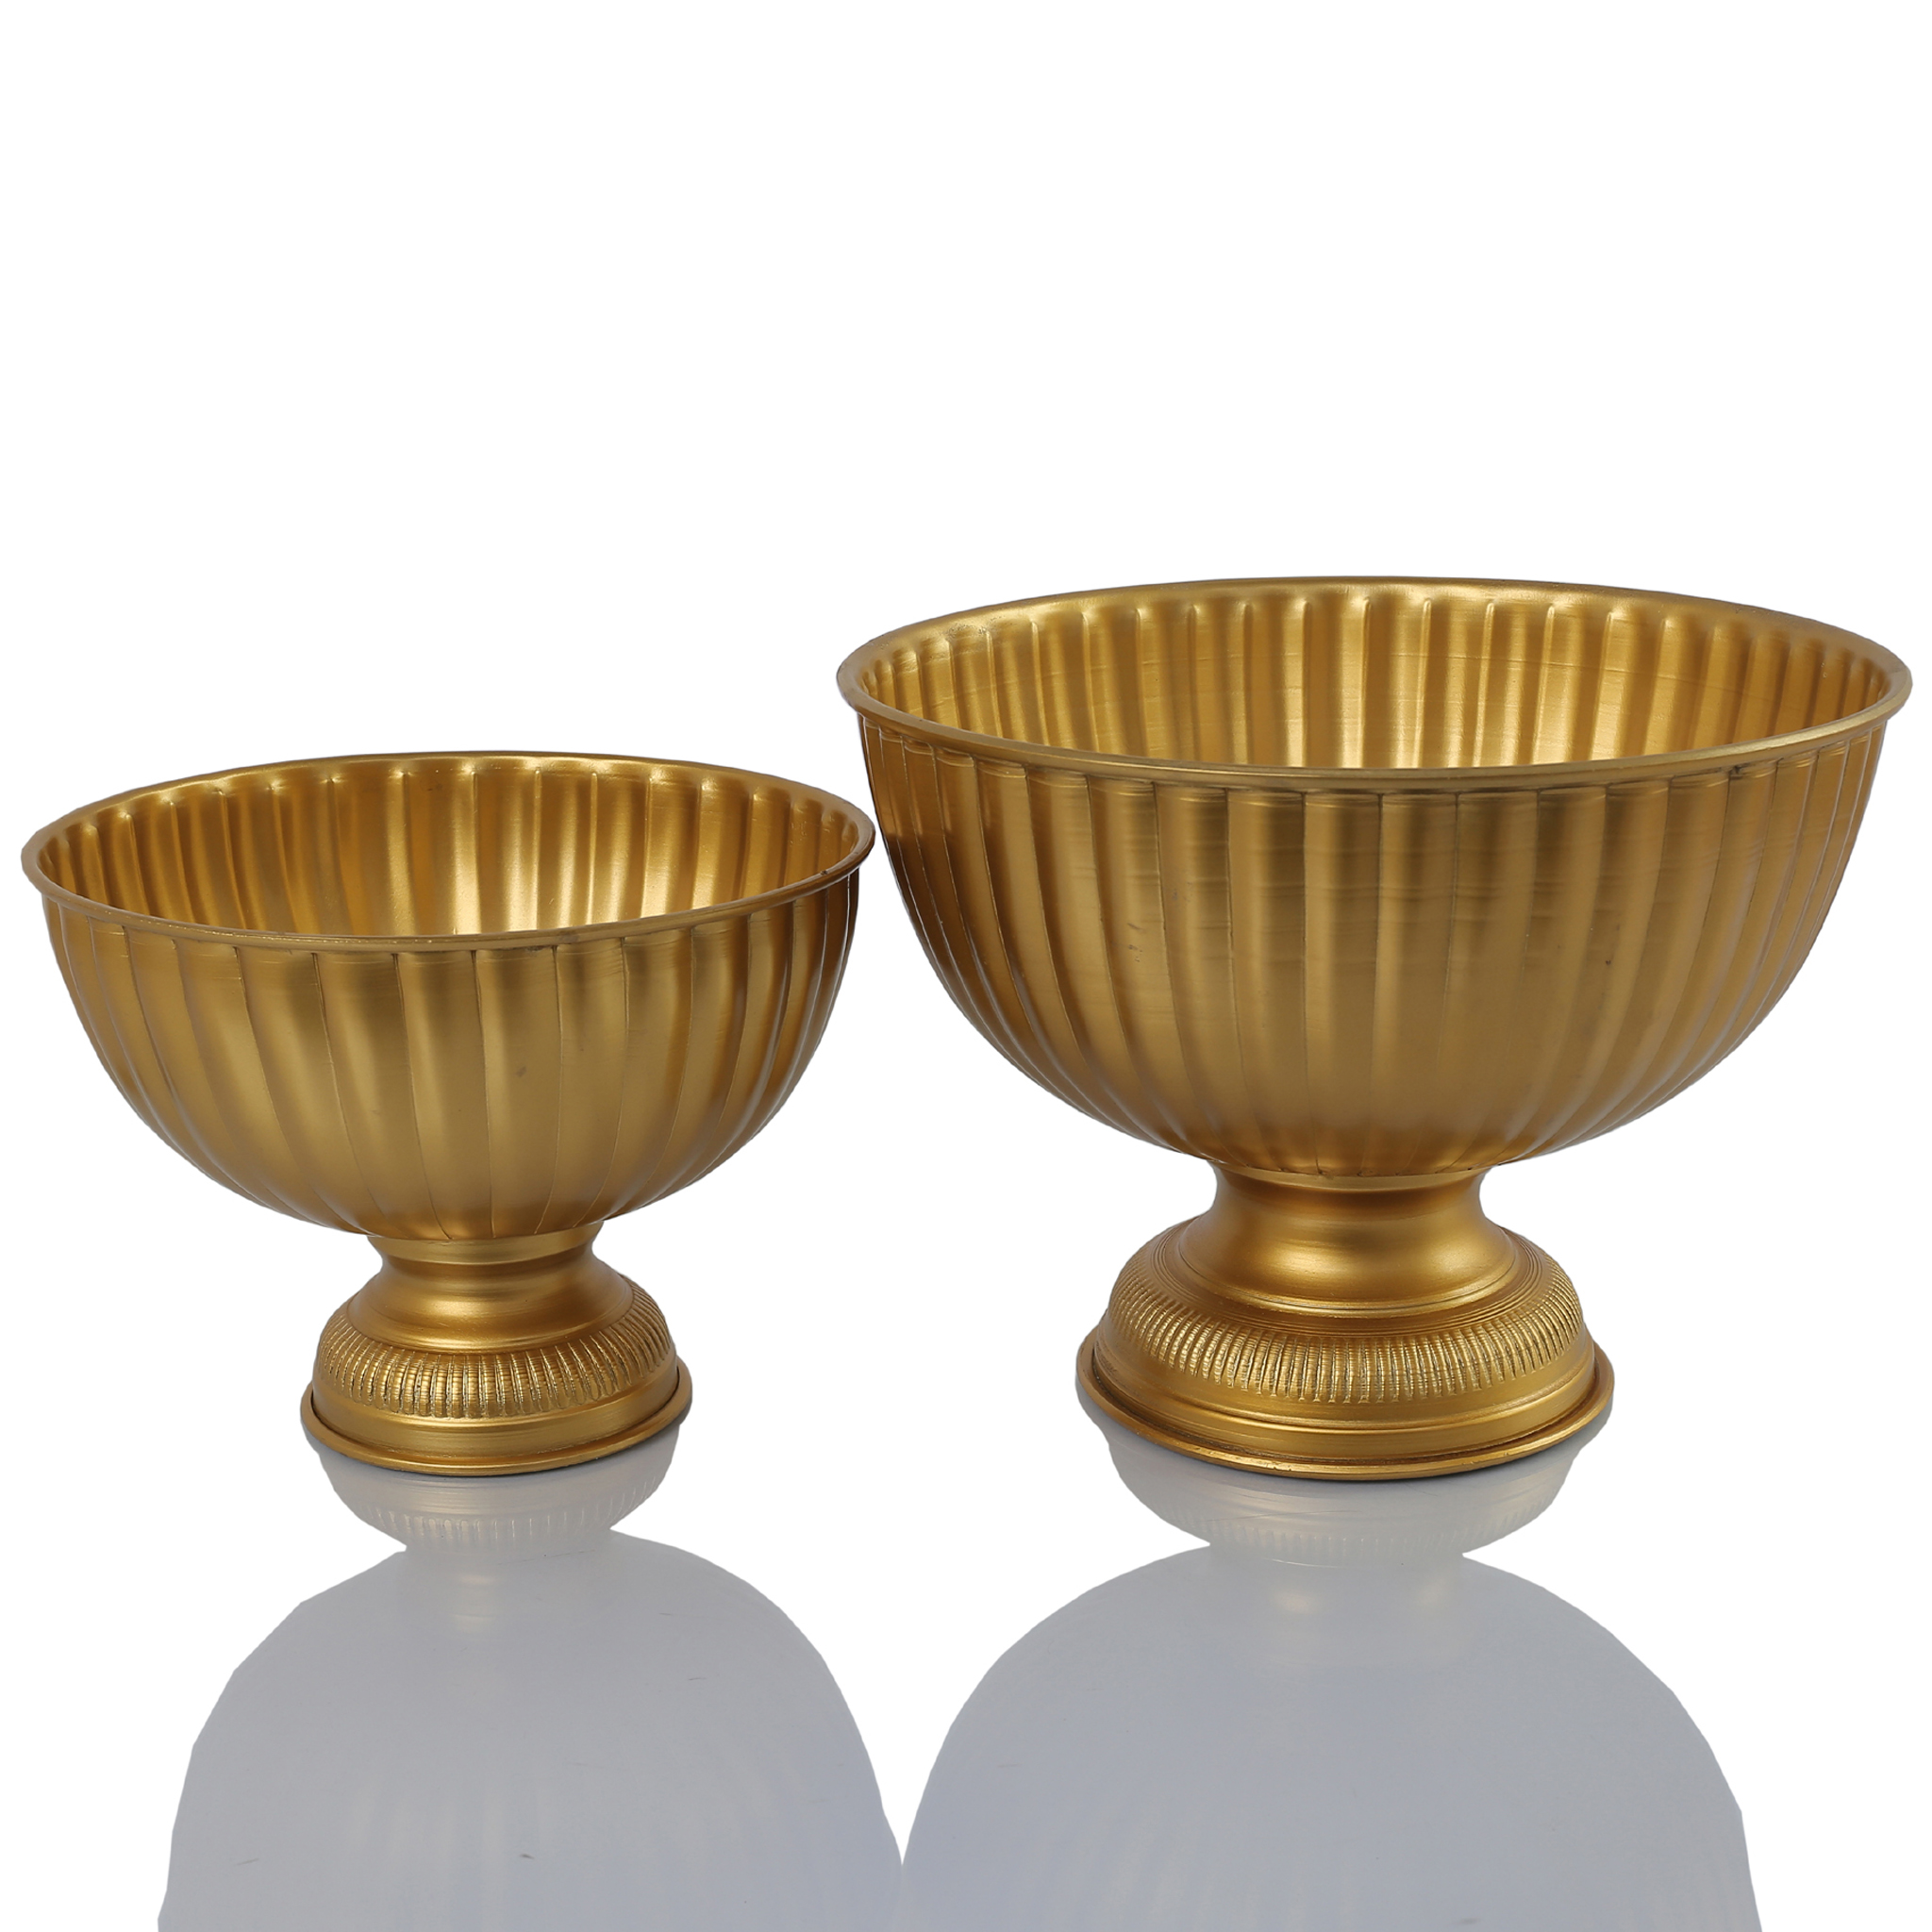 Koyal Wholesale Gold Metal Pedestal Bowl 6 x 6-Inch Floral Compote Vase, For Wedding Centerpiece